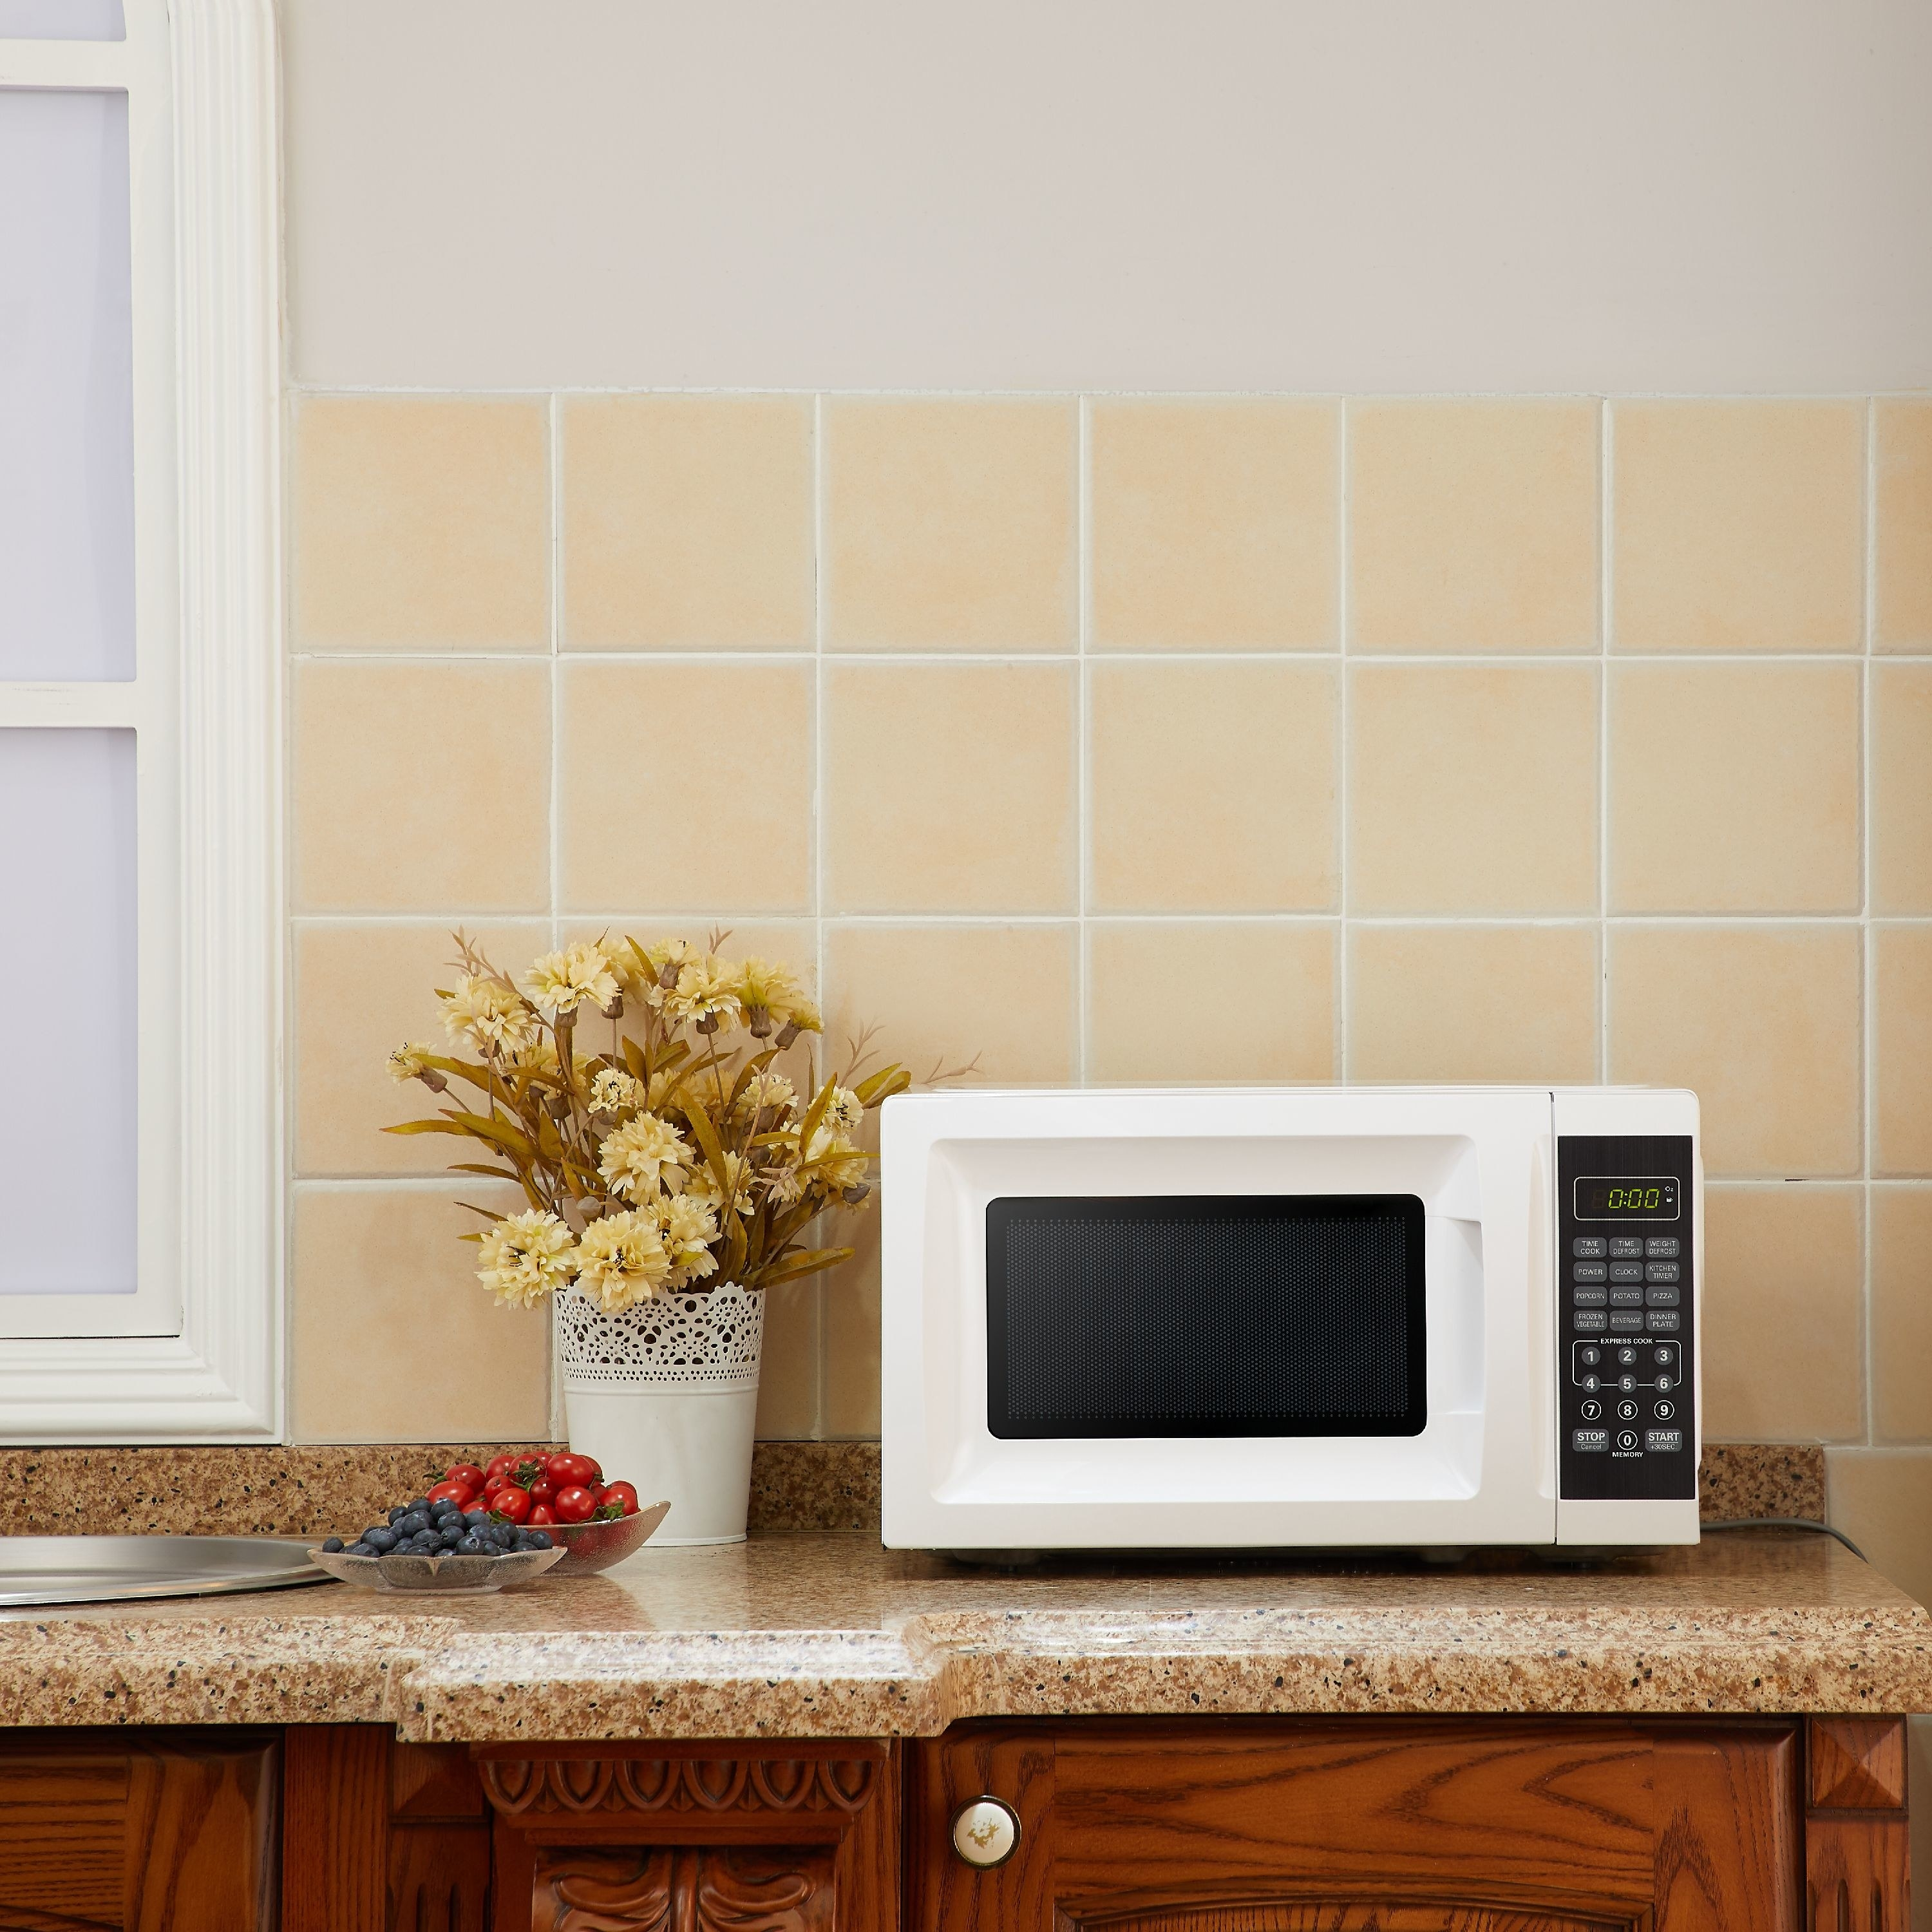 white microwave oven on counter